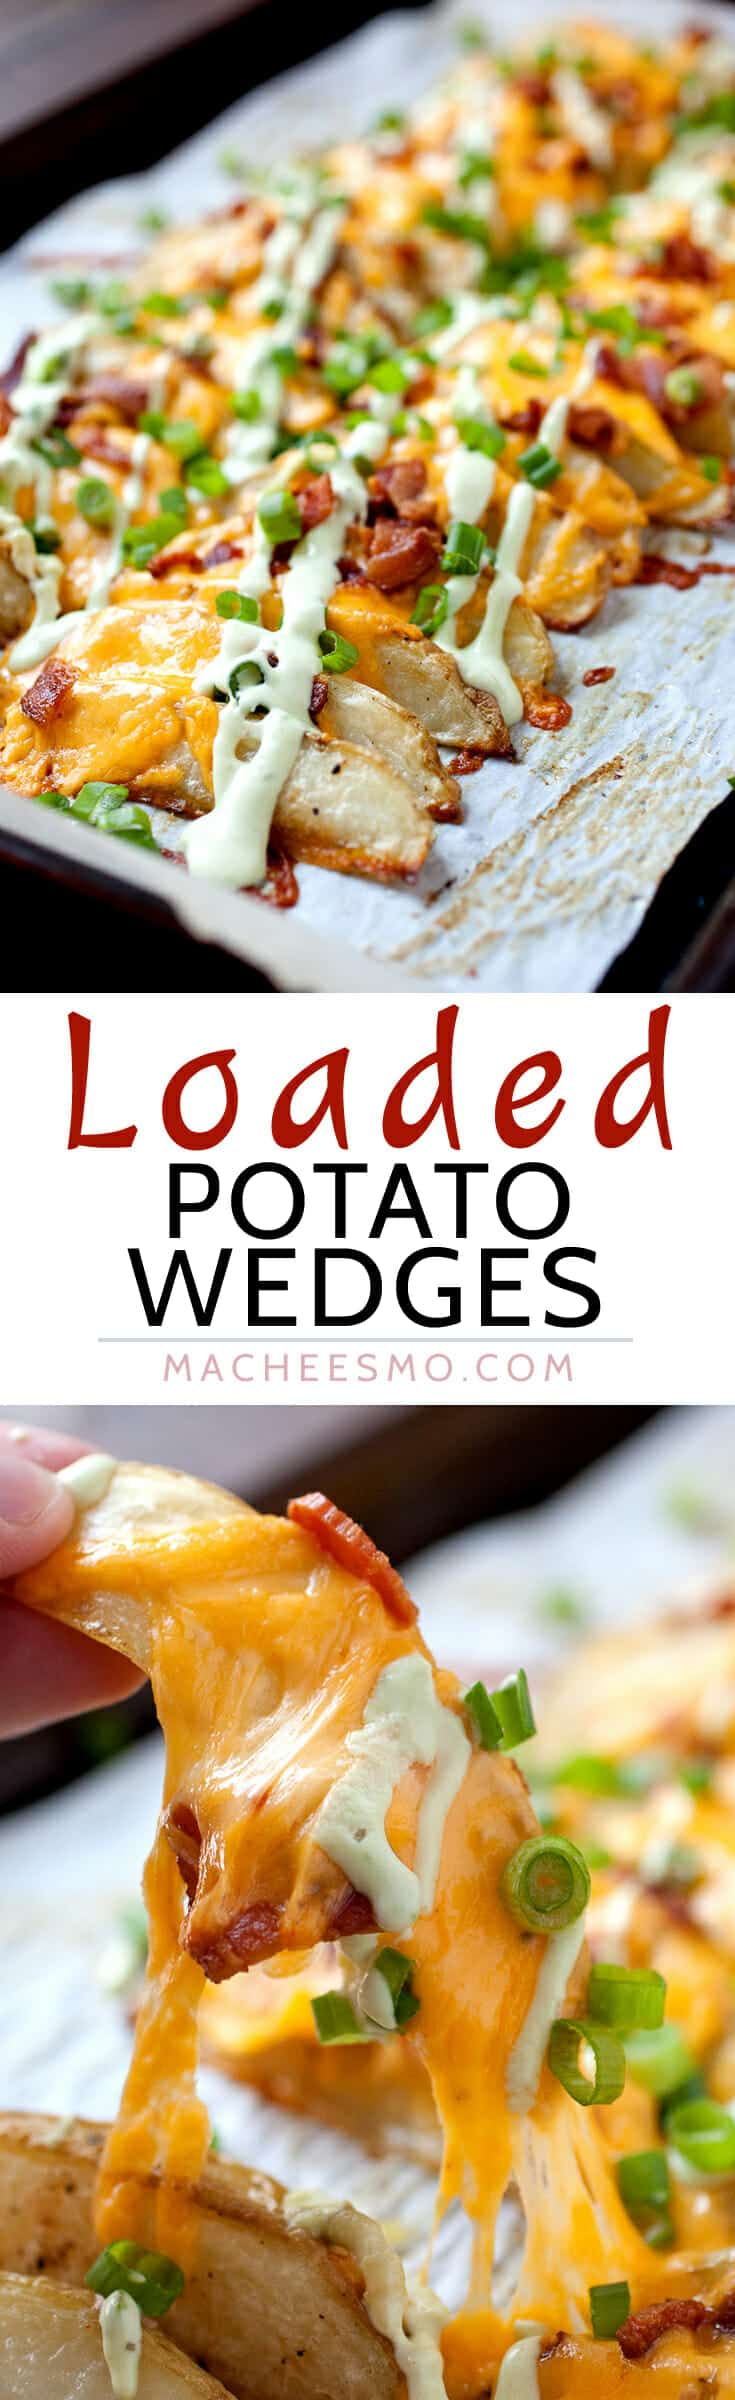 Loaded Potato Wedges - Appetizer? Side dish? Main meal? These completely loaded baked potato wedges have can be anything you want. Cheddar, chives, avocado and sour cream sauce. Potato perfection! | macheesmo.com